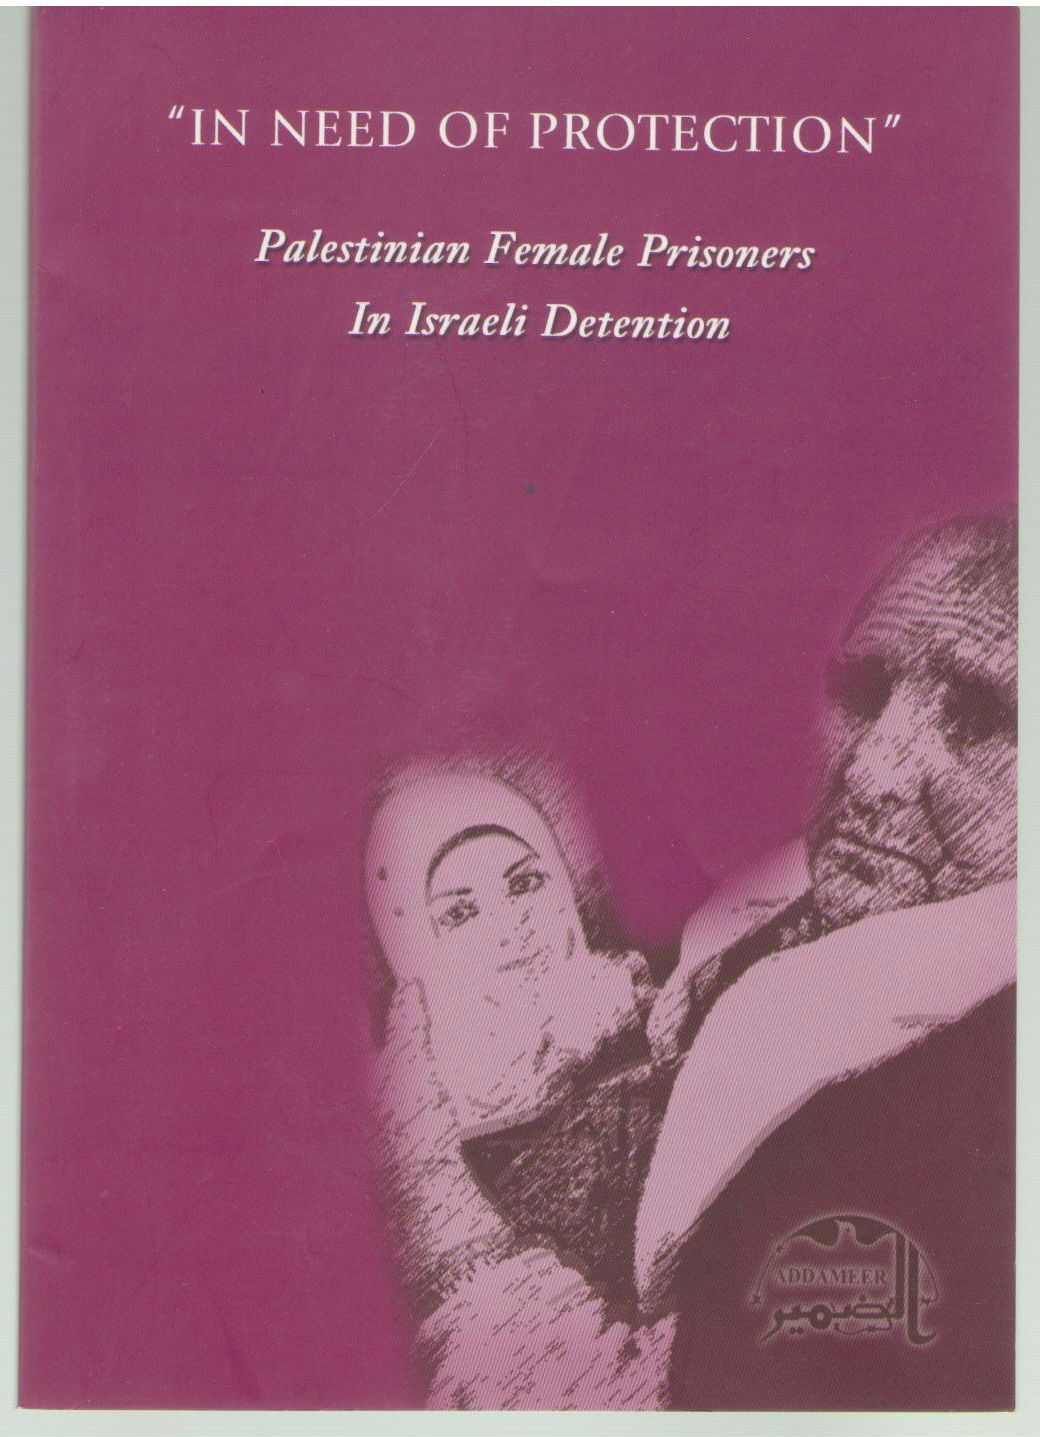 In Need of Protection: Palestinian Female Prisoners in Israeli Detention, Addameer